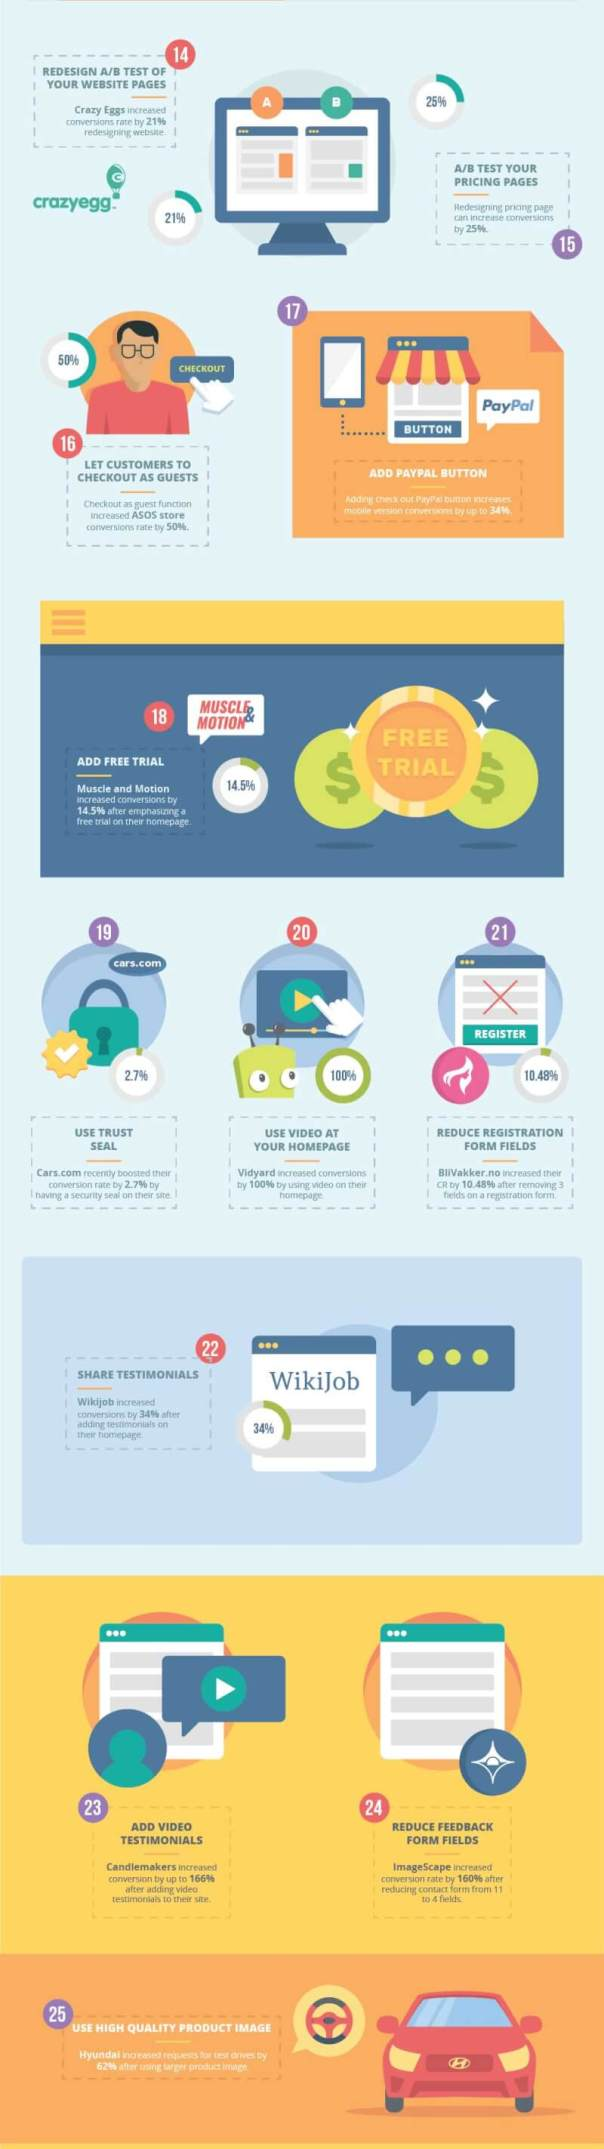 infographic-How-to-Optimize-your-Site-for-Conversions_02